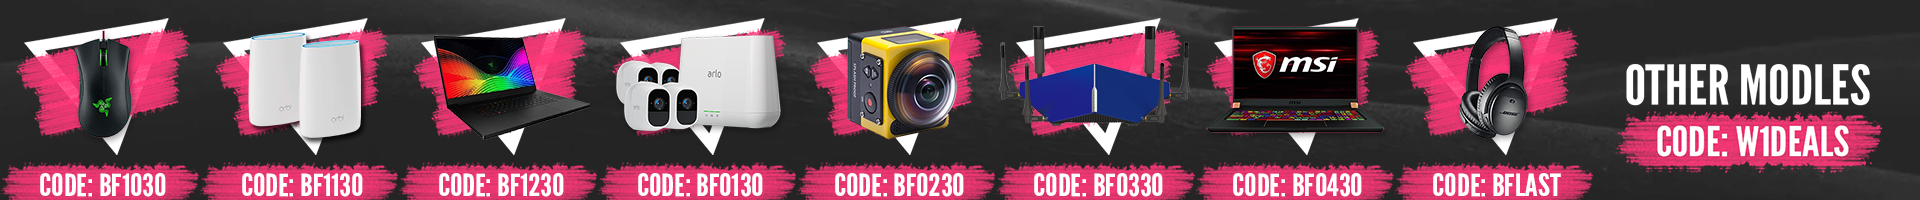 Wireless 1 Black Friday Promotion 2019